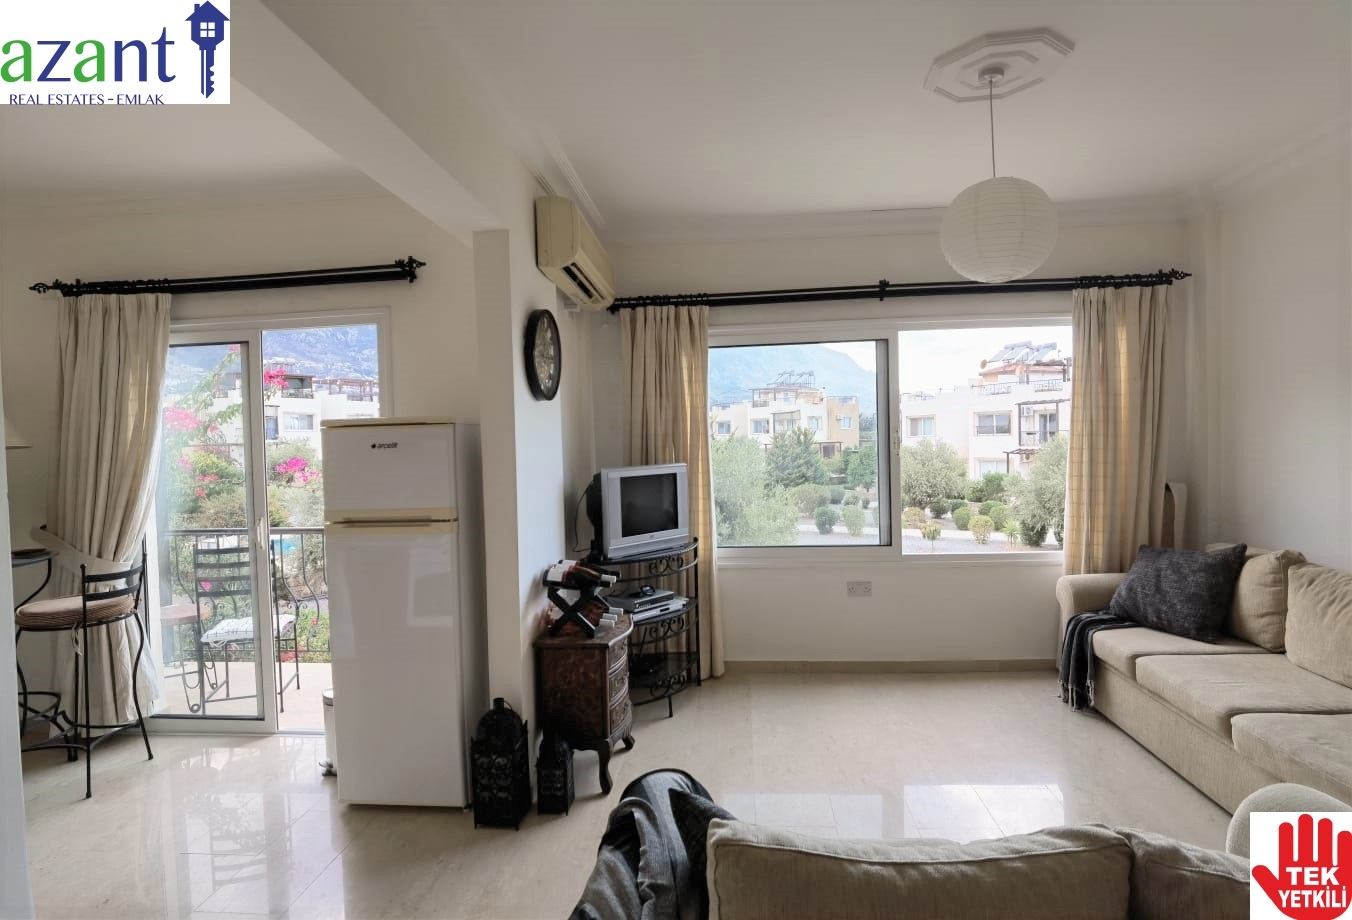 2 BEDROOM APARTMENT WITH POOL IN LAPTA